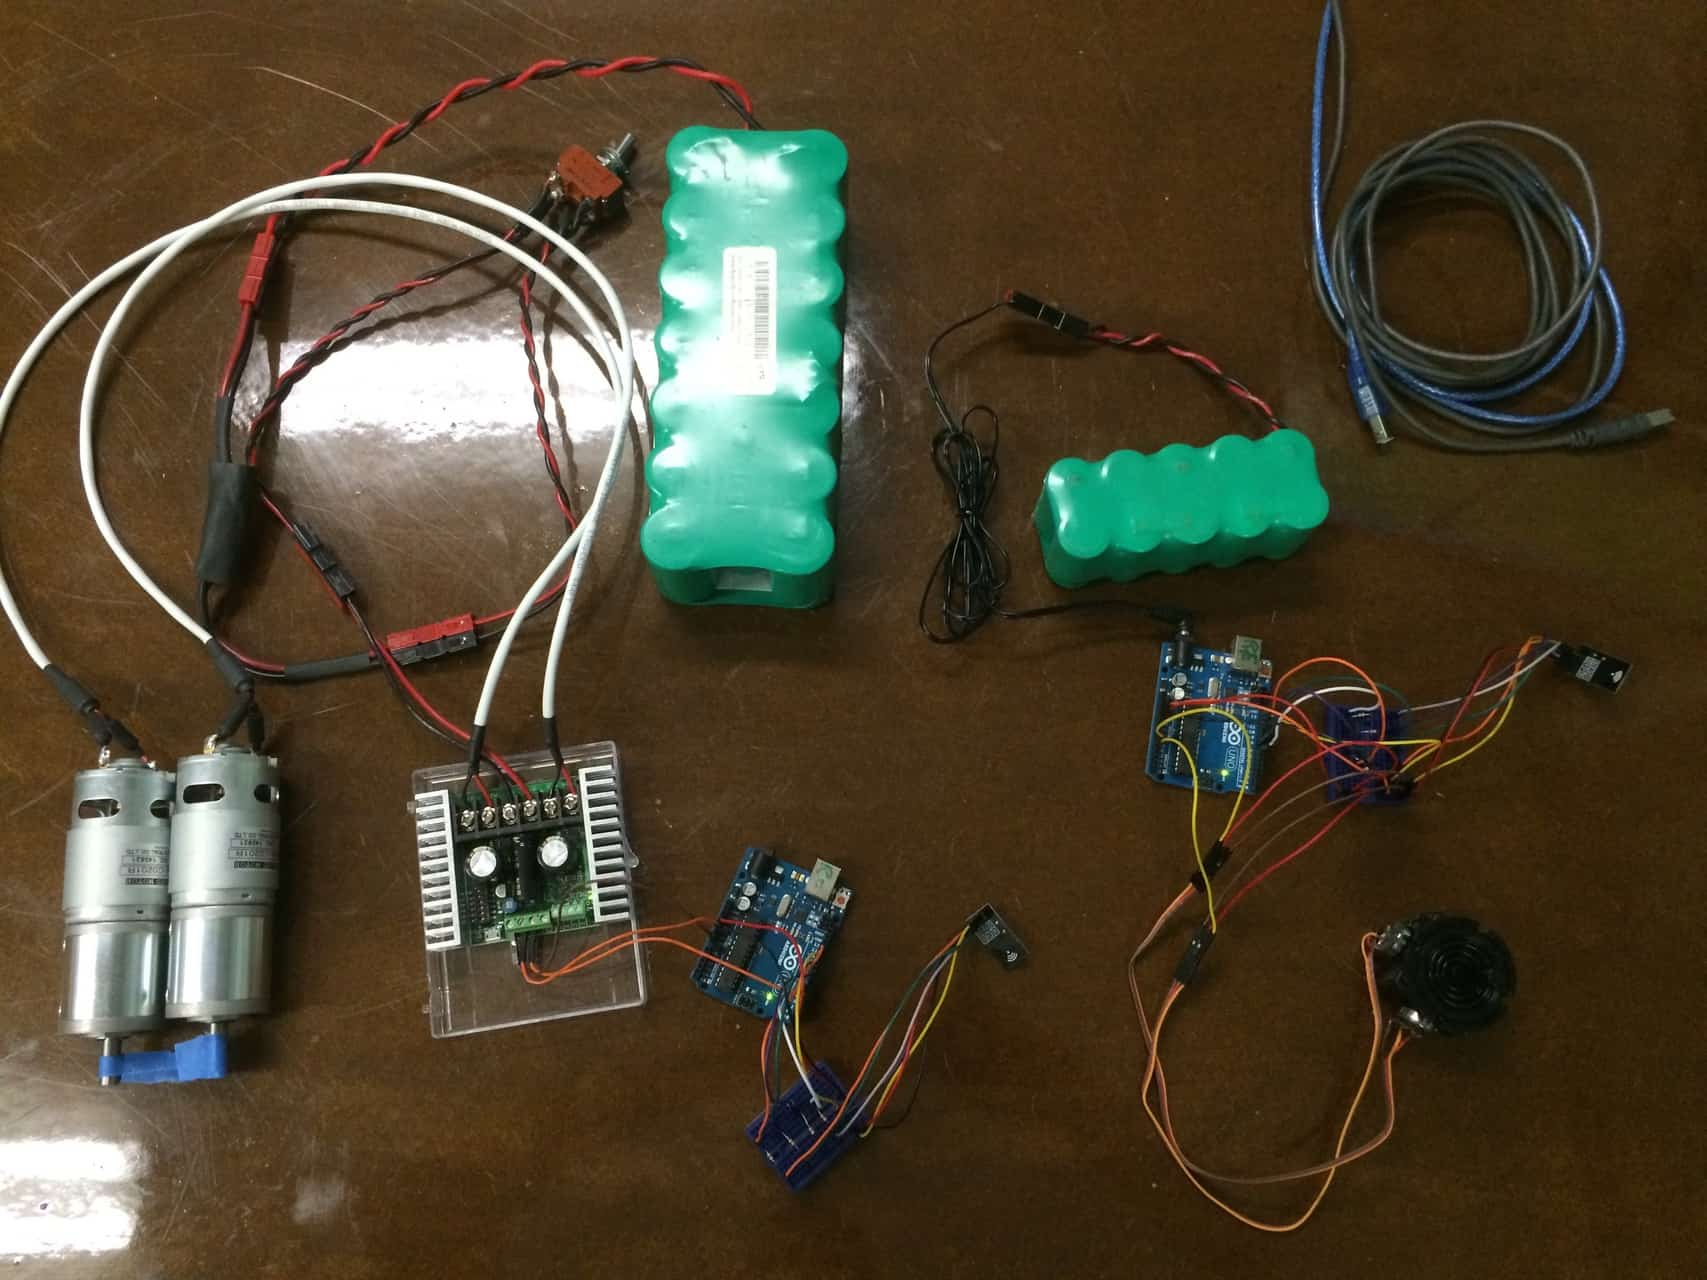 Links Circuit Ideas I Projects Schematics Robotics Dual Led Chaser Arduino Project For Beginners Rf Joystick Motor Controller